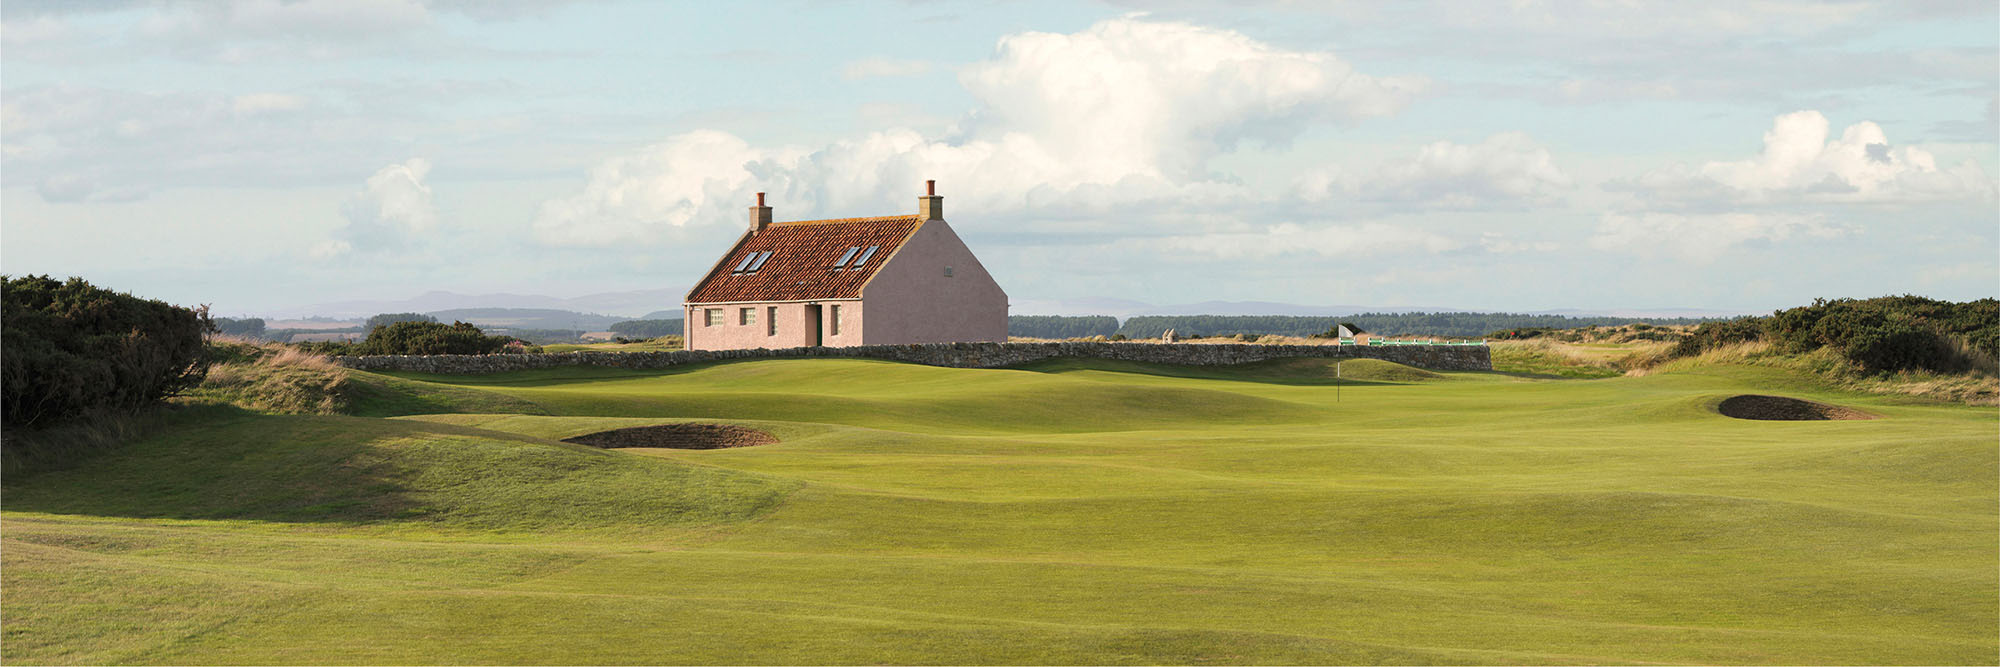 Golf Course Image - St Andrews Eden No. 1